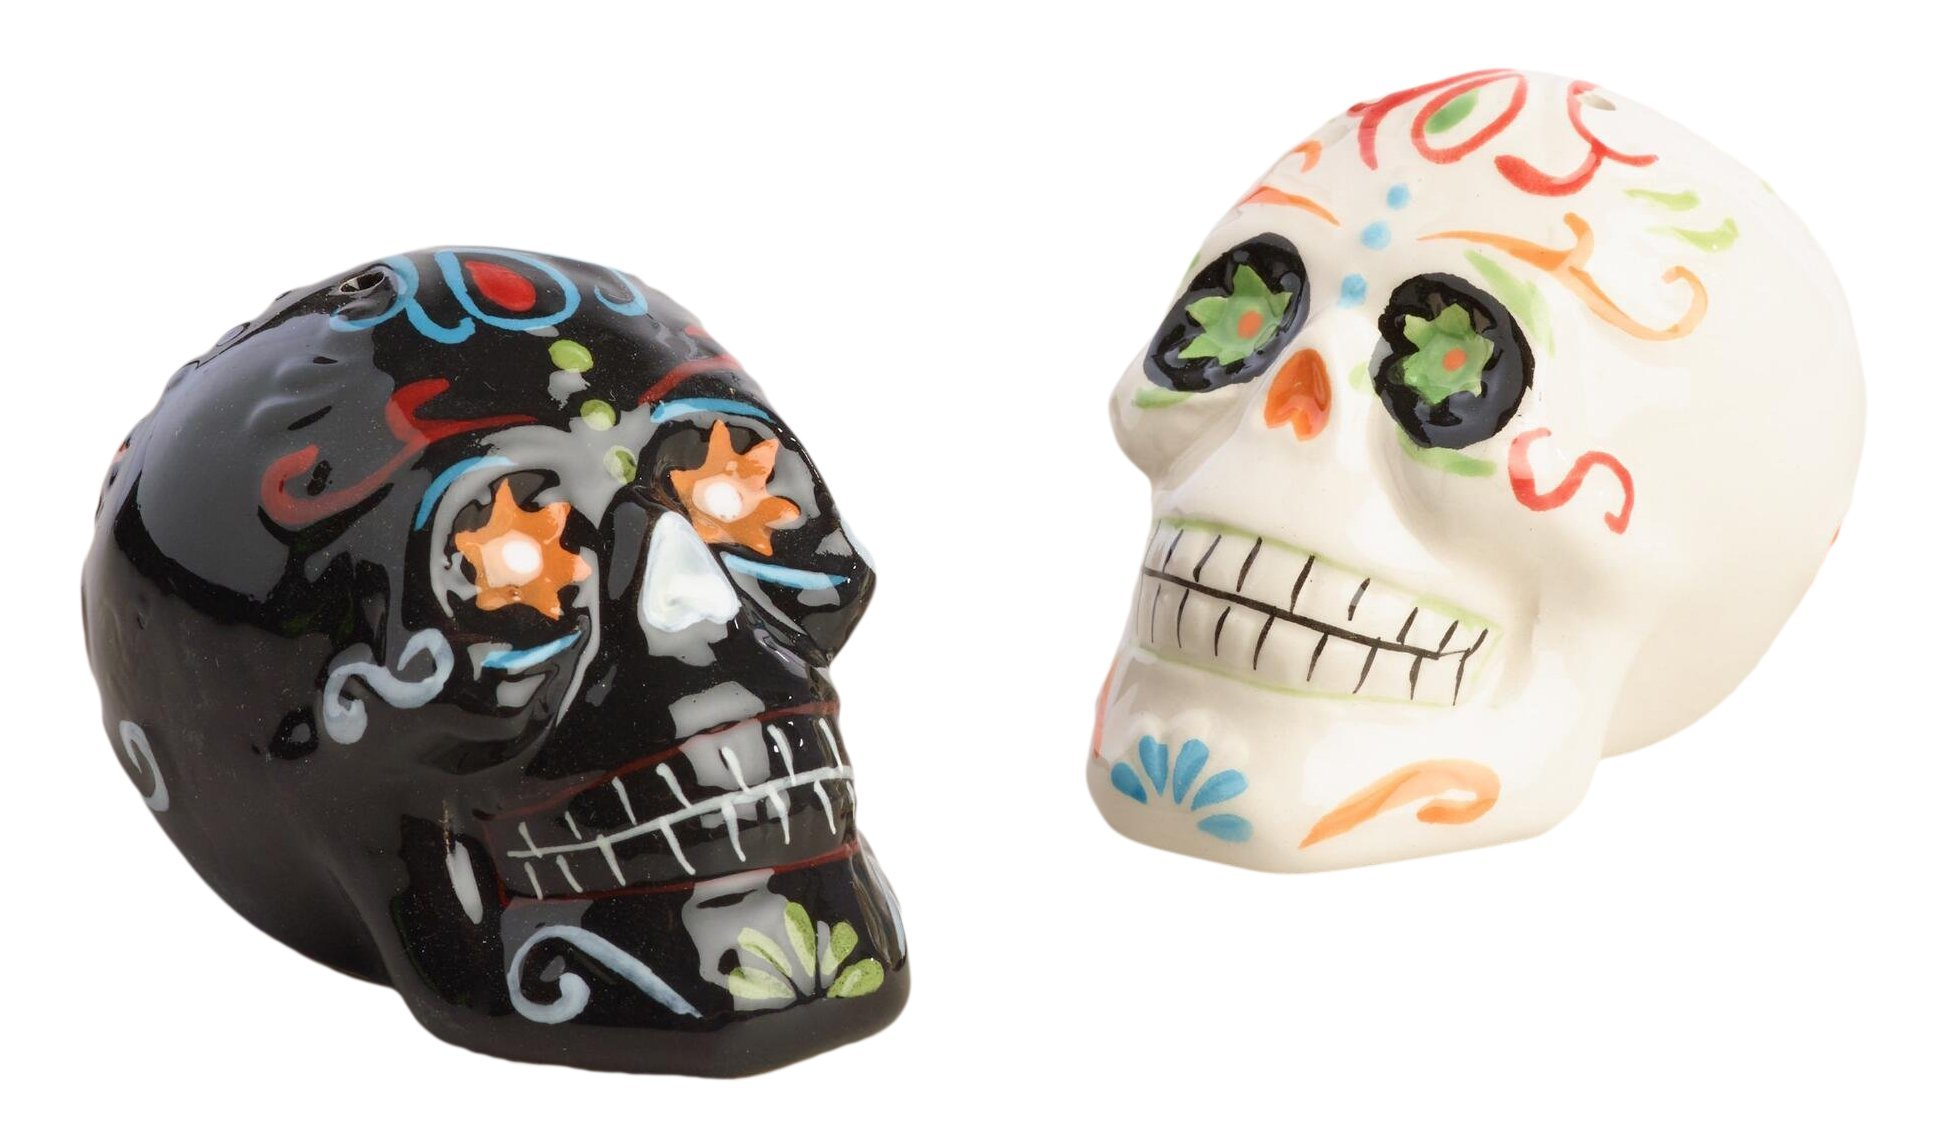 World Market Day of the Dead Los Muertos Salt and Pepper Shaker Set, Black and White